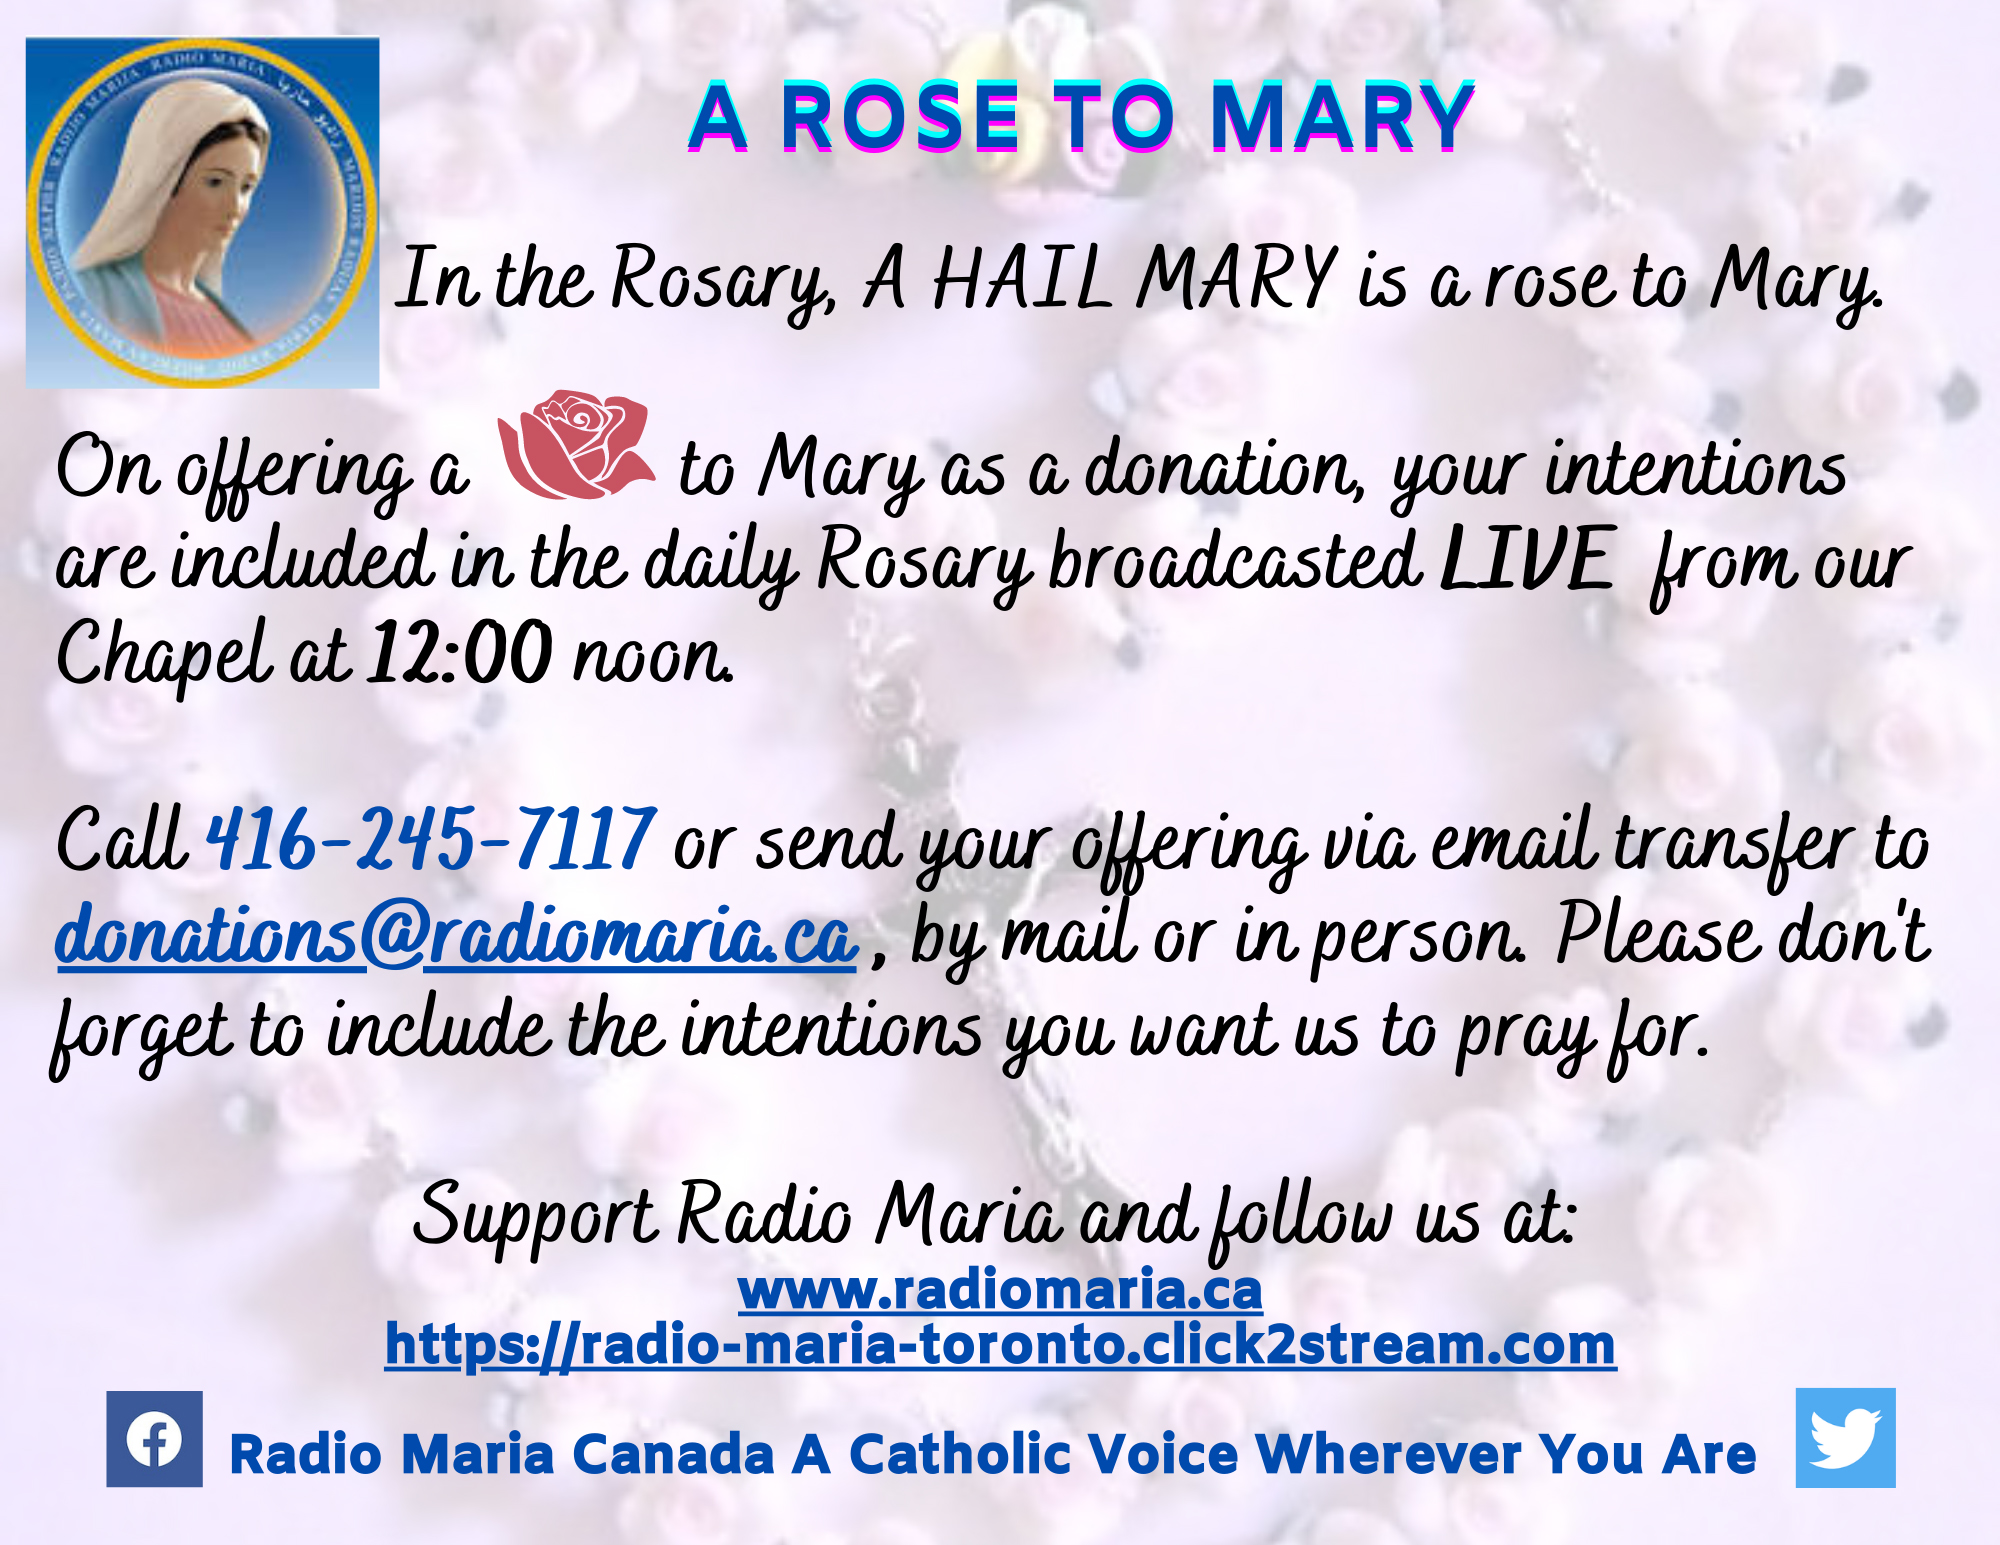 A Rose to Mary